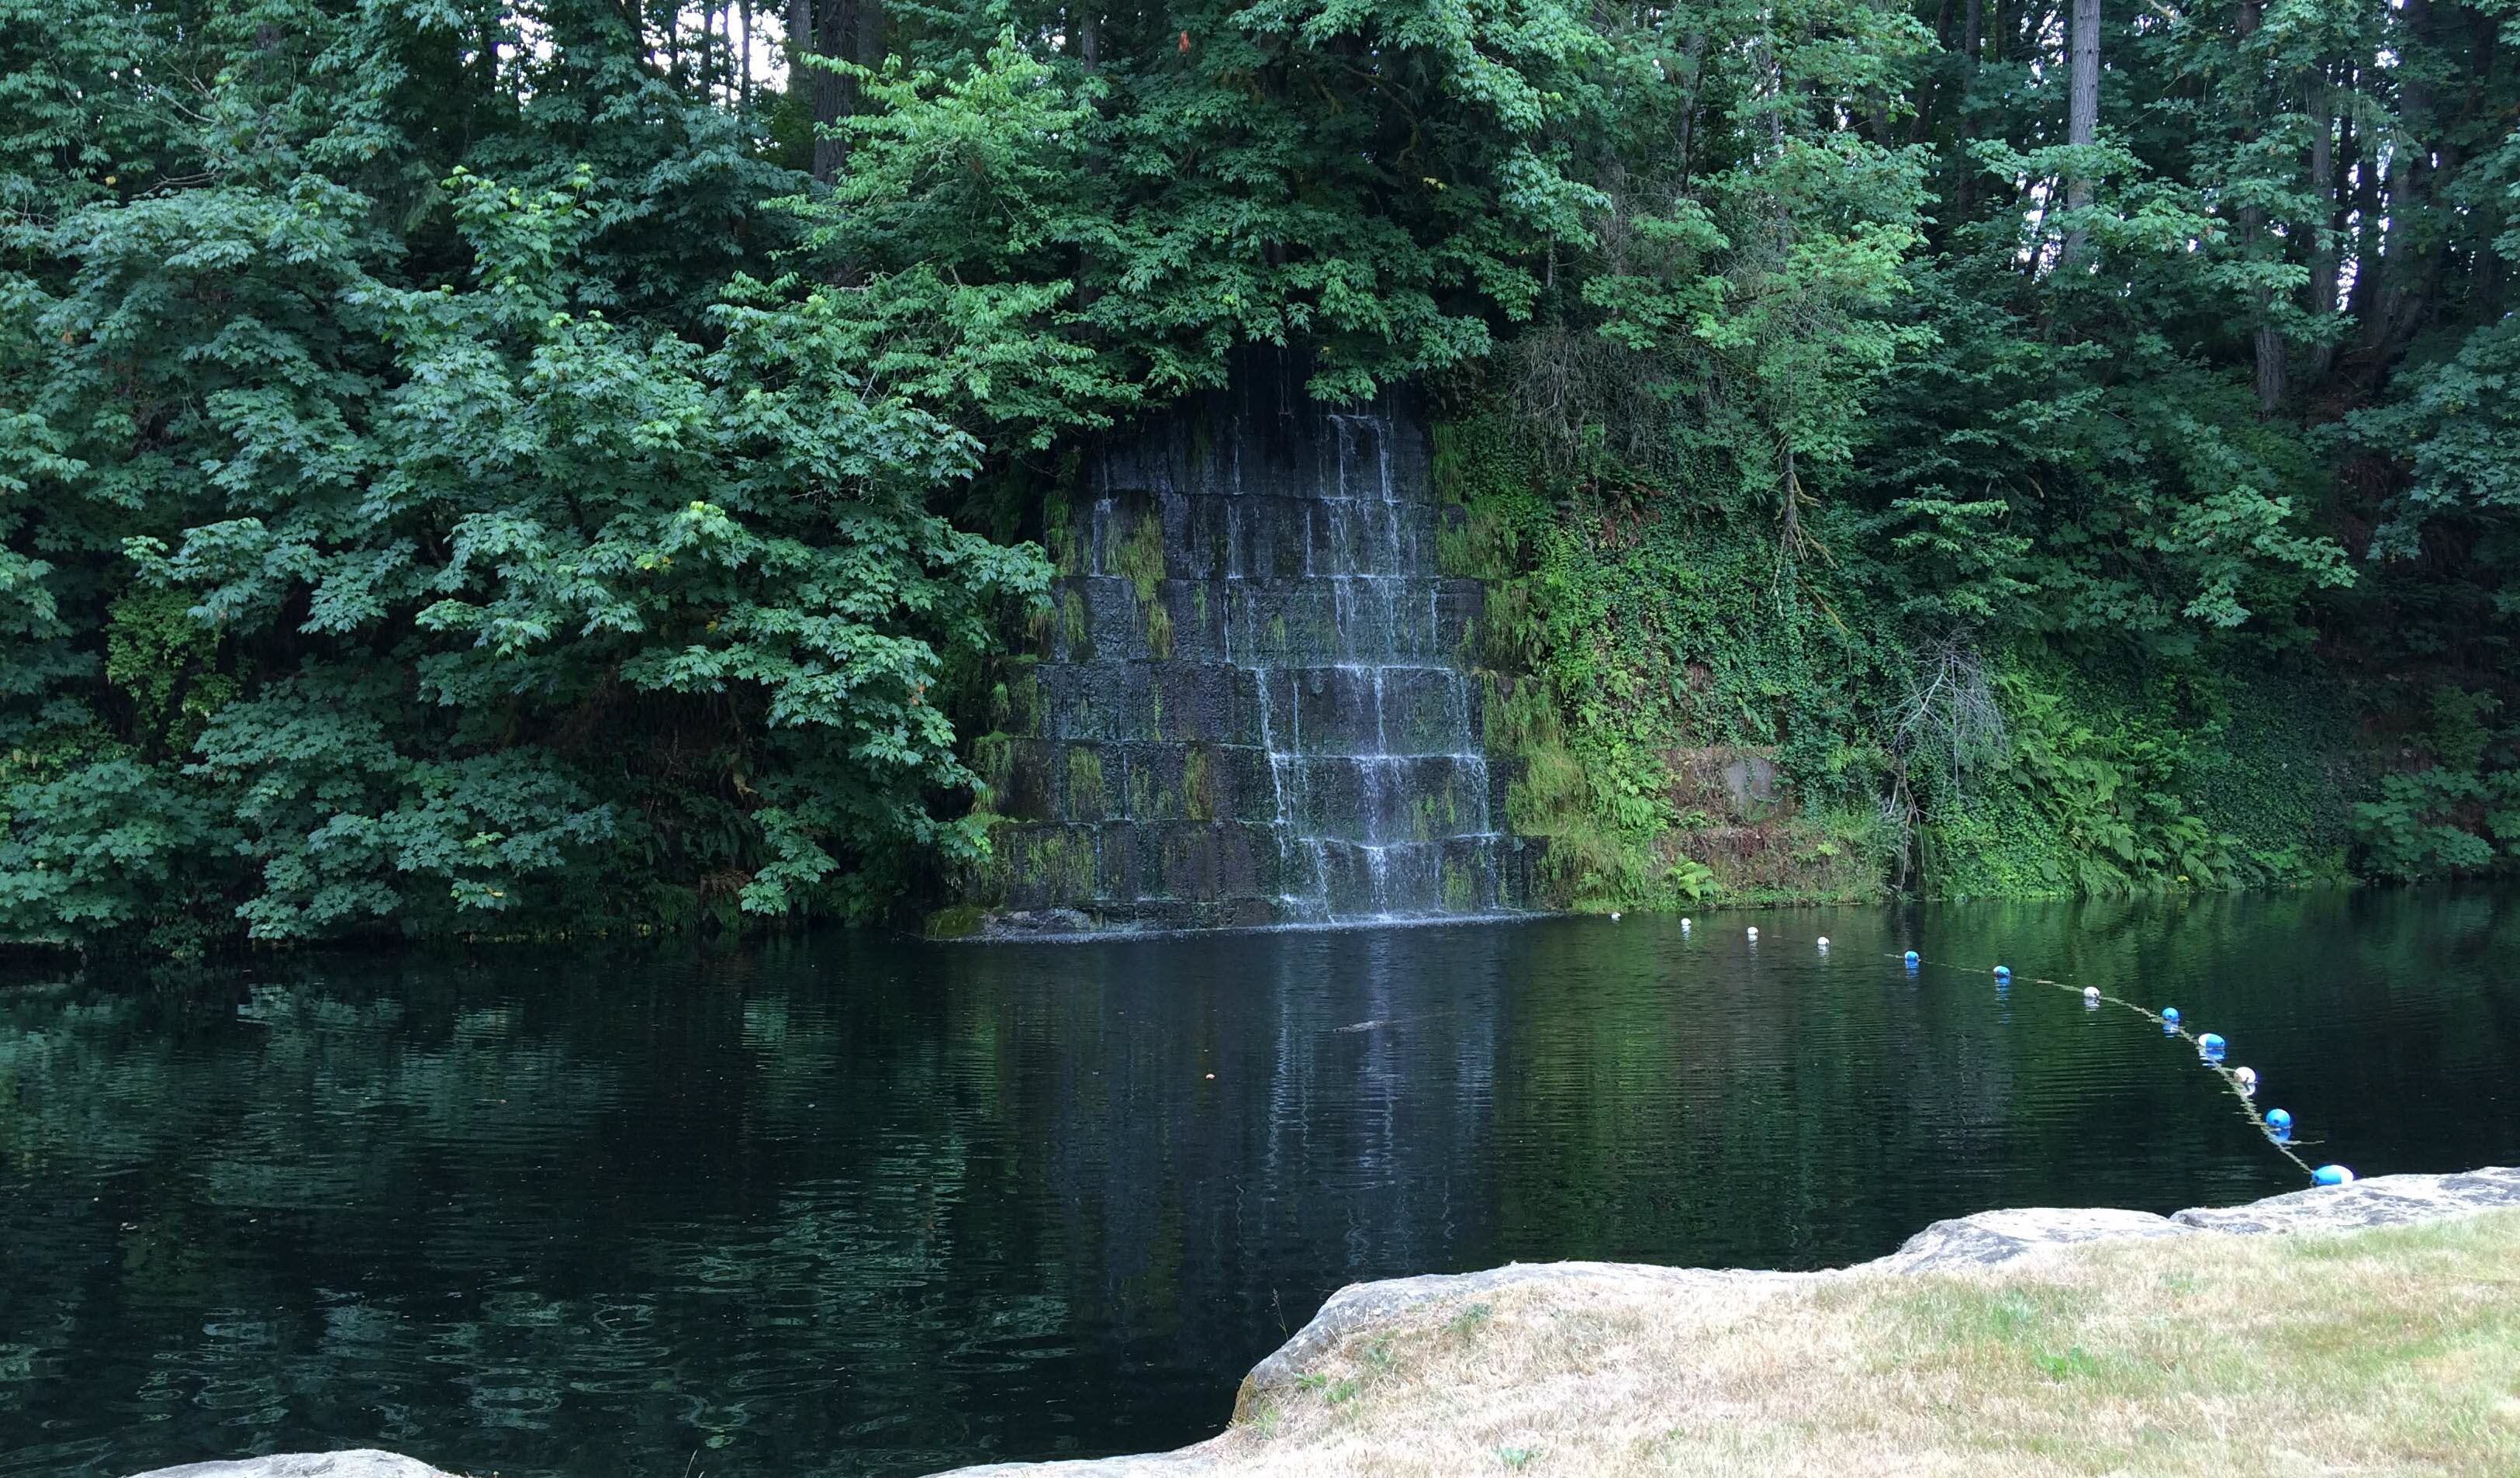 The waterfall at the deep pool. Courtesy City of Tenino